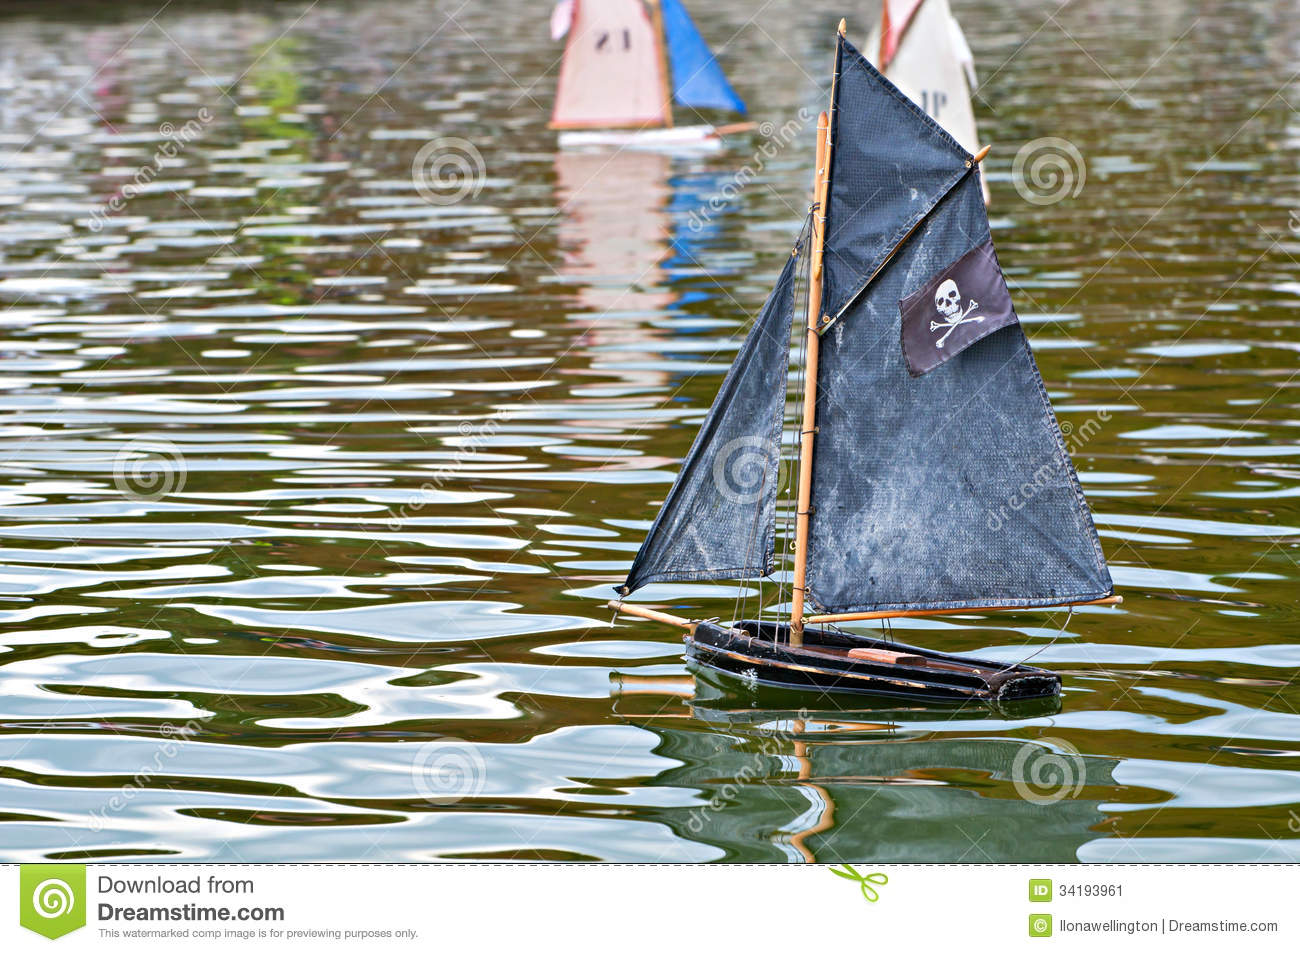 Toy pirate ship in a pond